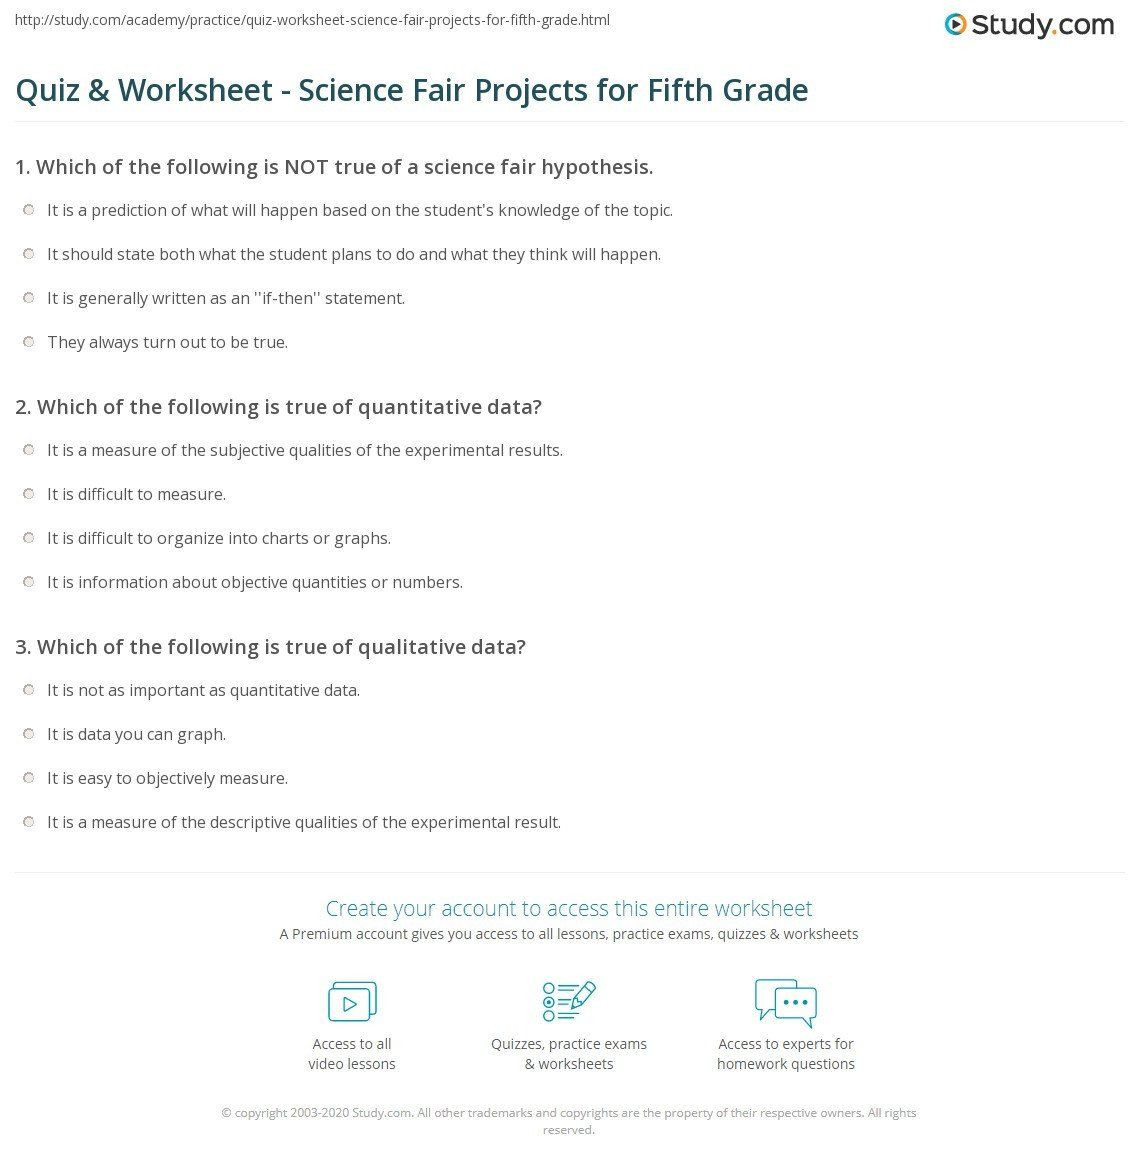 5th Grade Ecosystem Worksheets 5th Grade Ecosystem Worksheets 5th Grade Life Science